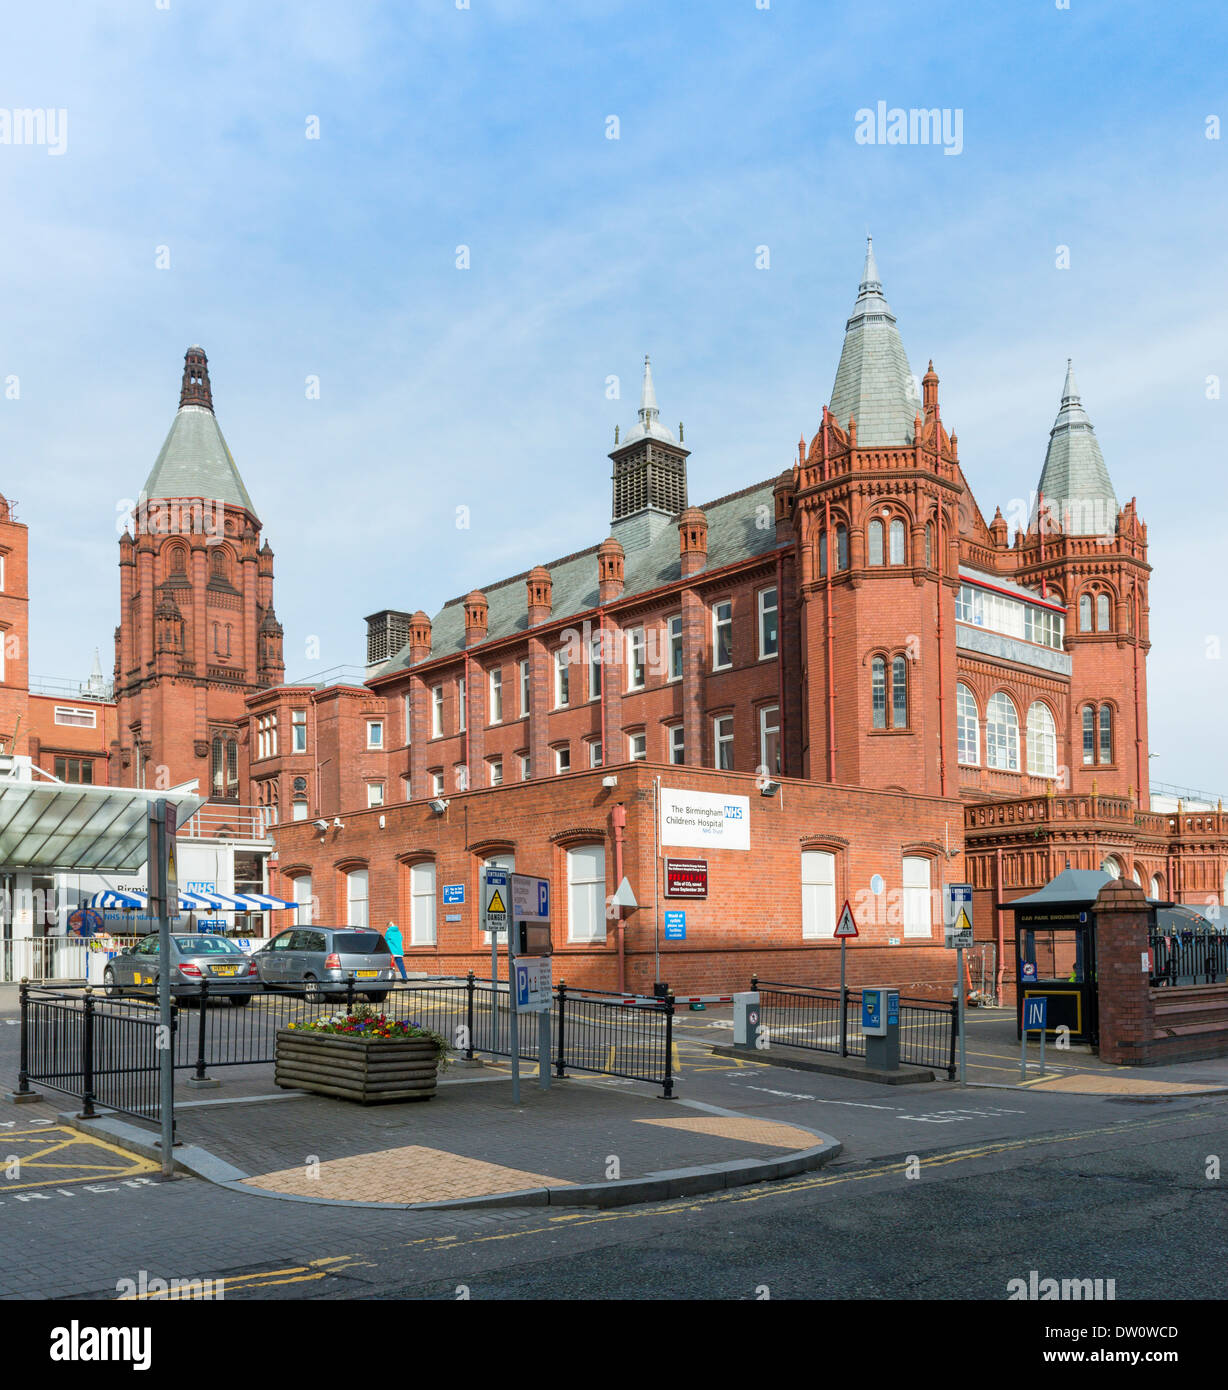 Birmingham Childrens Hospital, Stadtzentrum. Stockbild